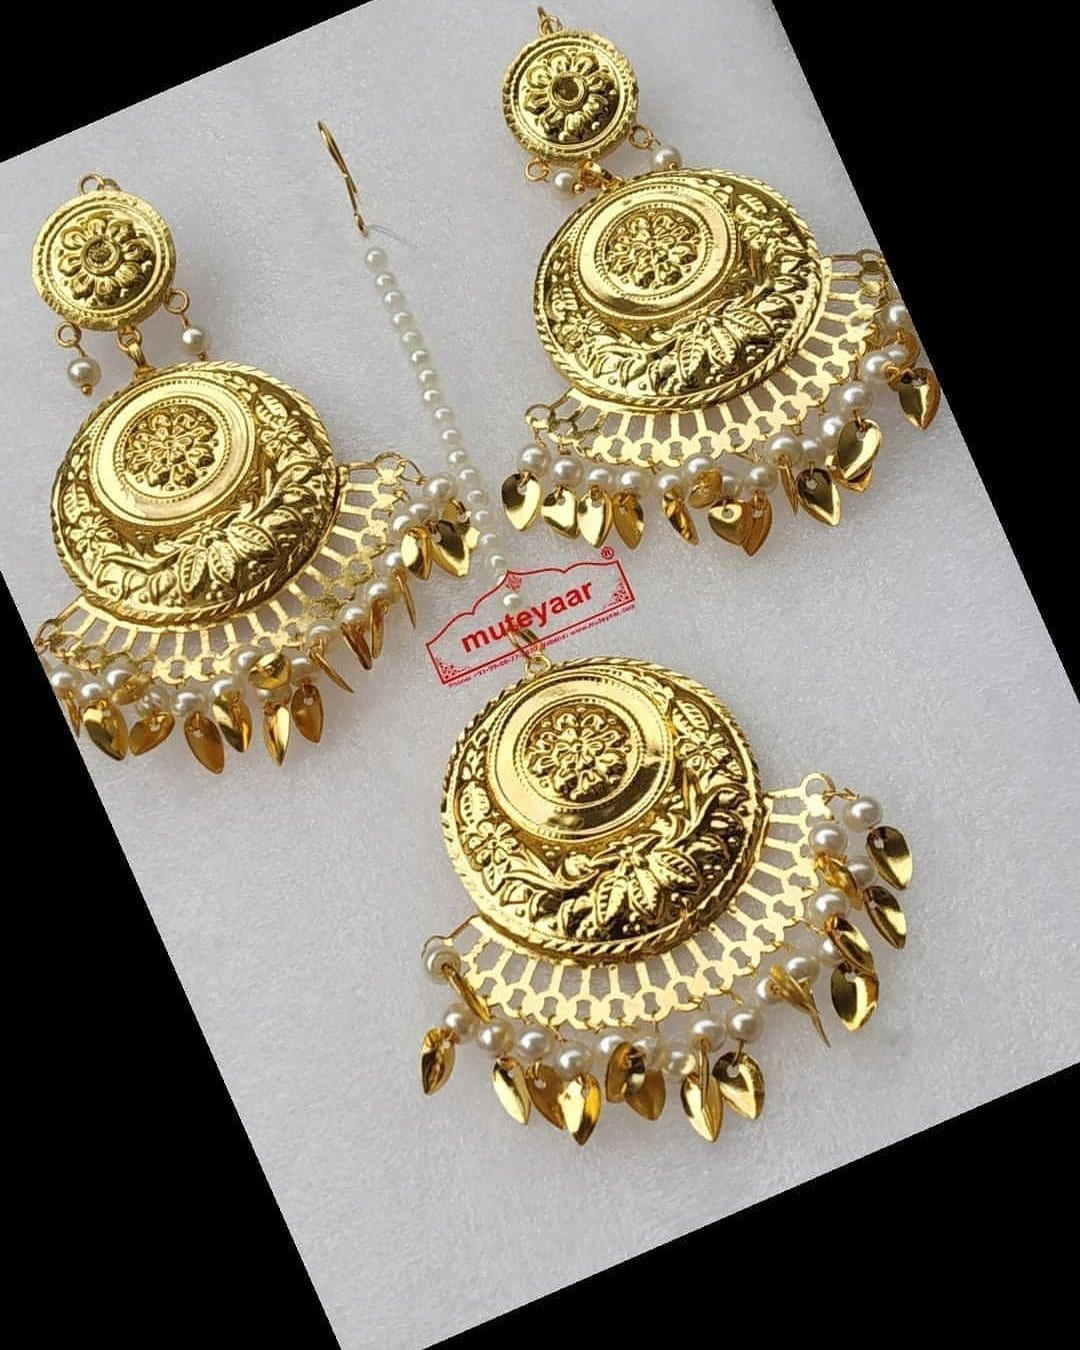 Gold Polished Punjabi Earrings Tikka set J0490 1